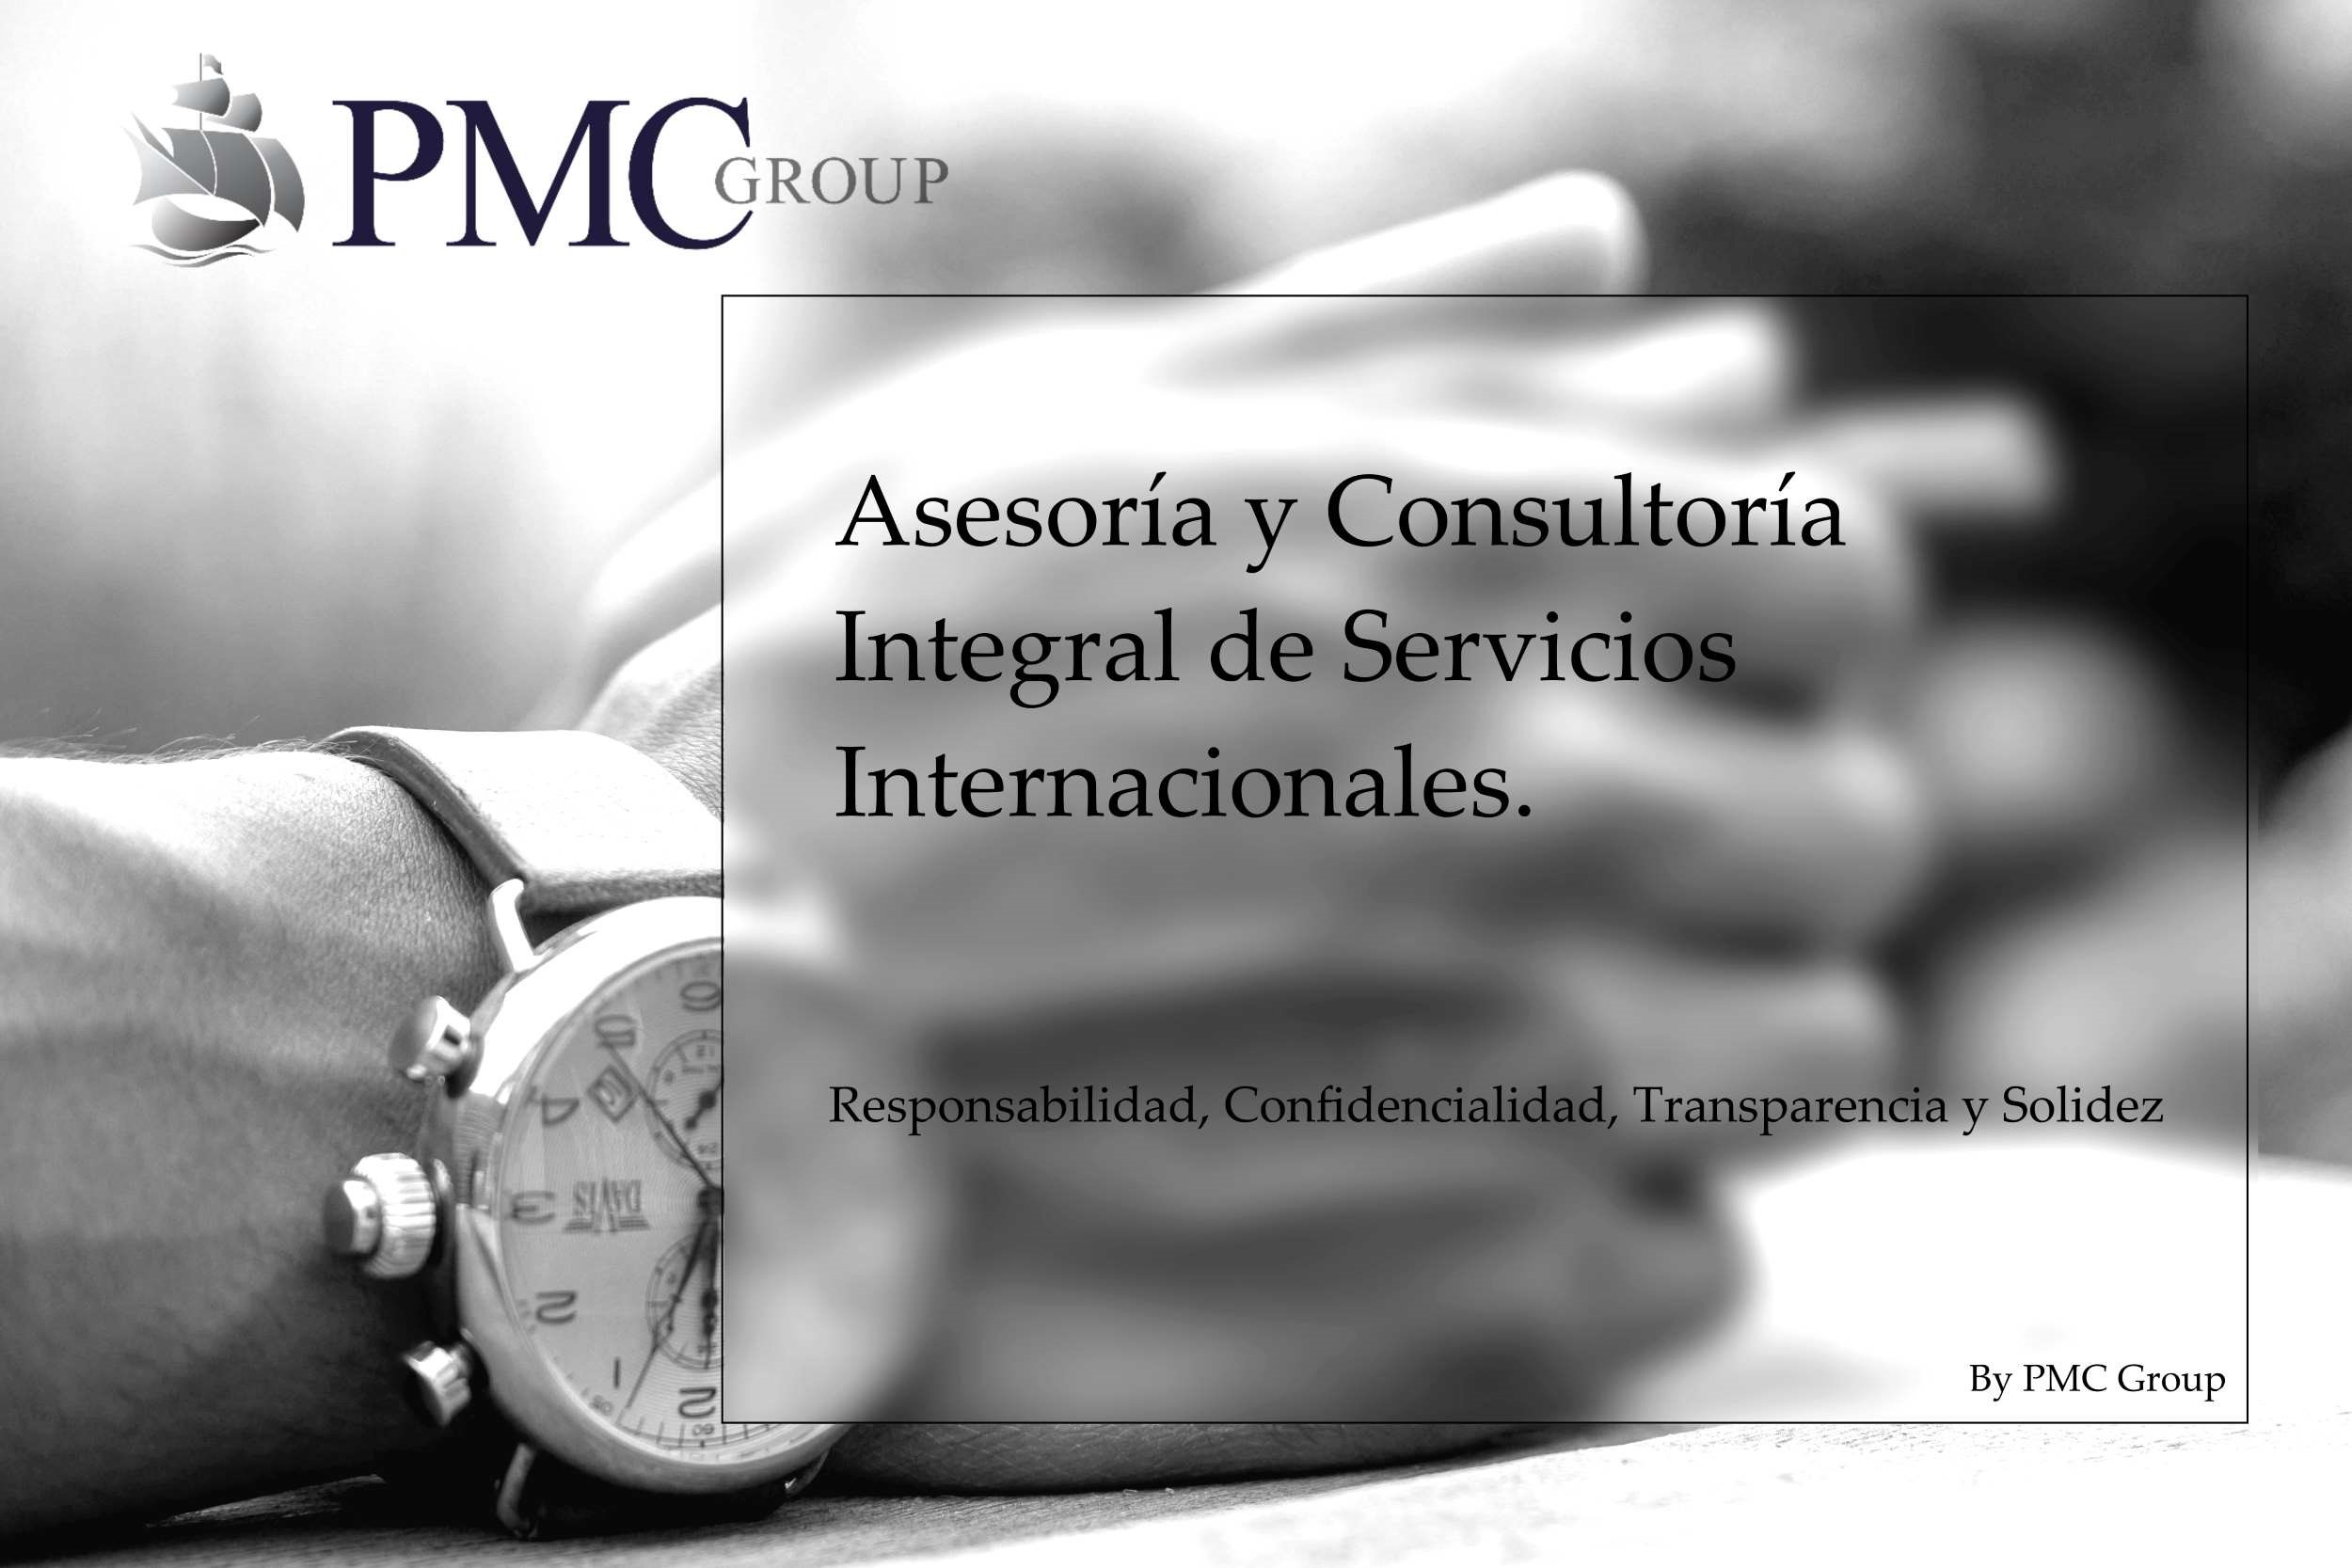 pmc group slide newsletter marzo 2016